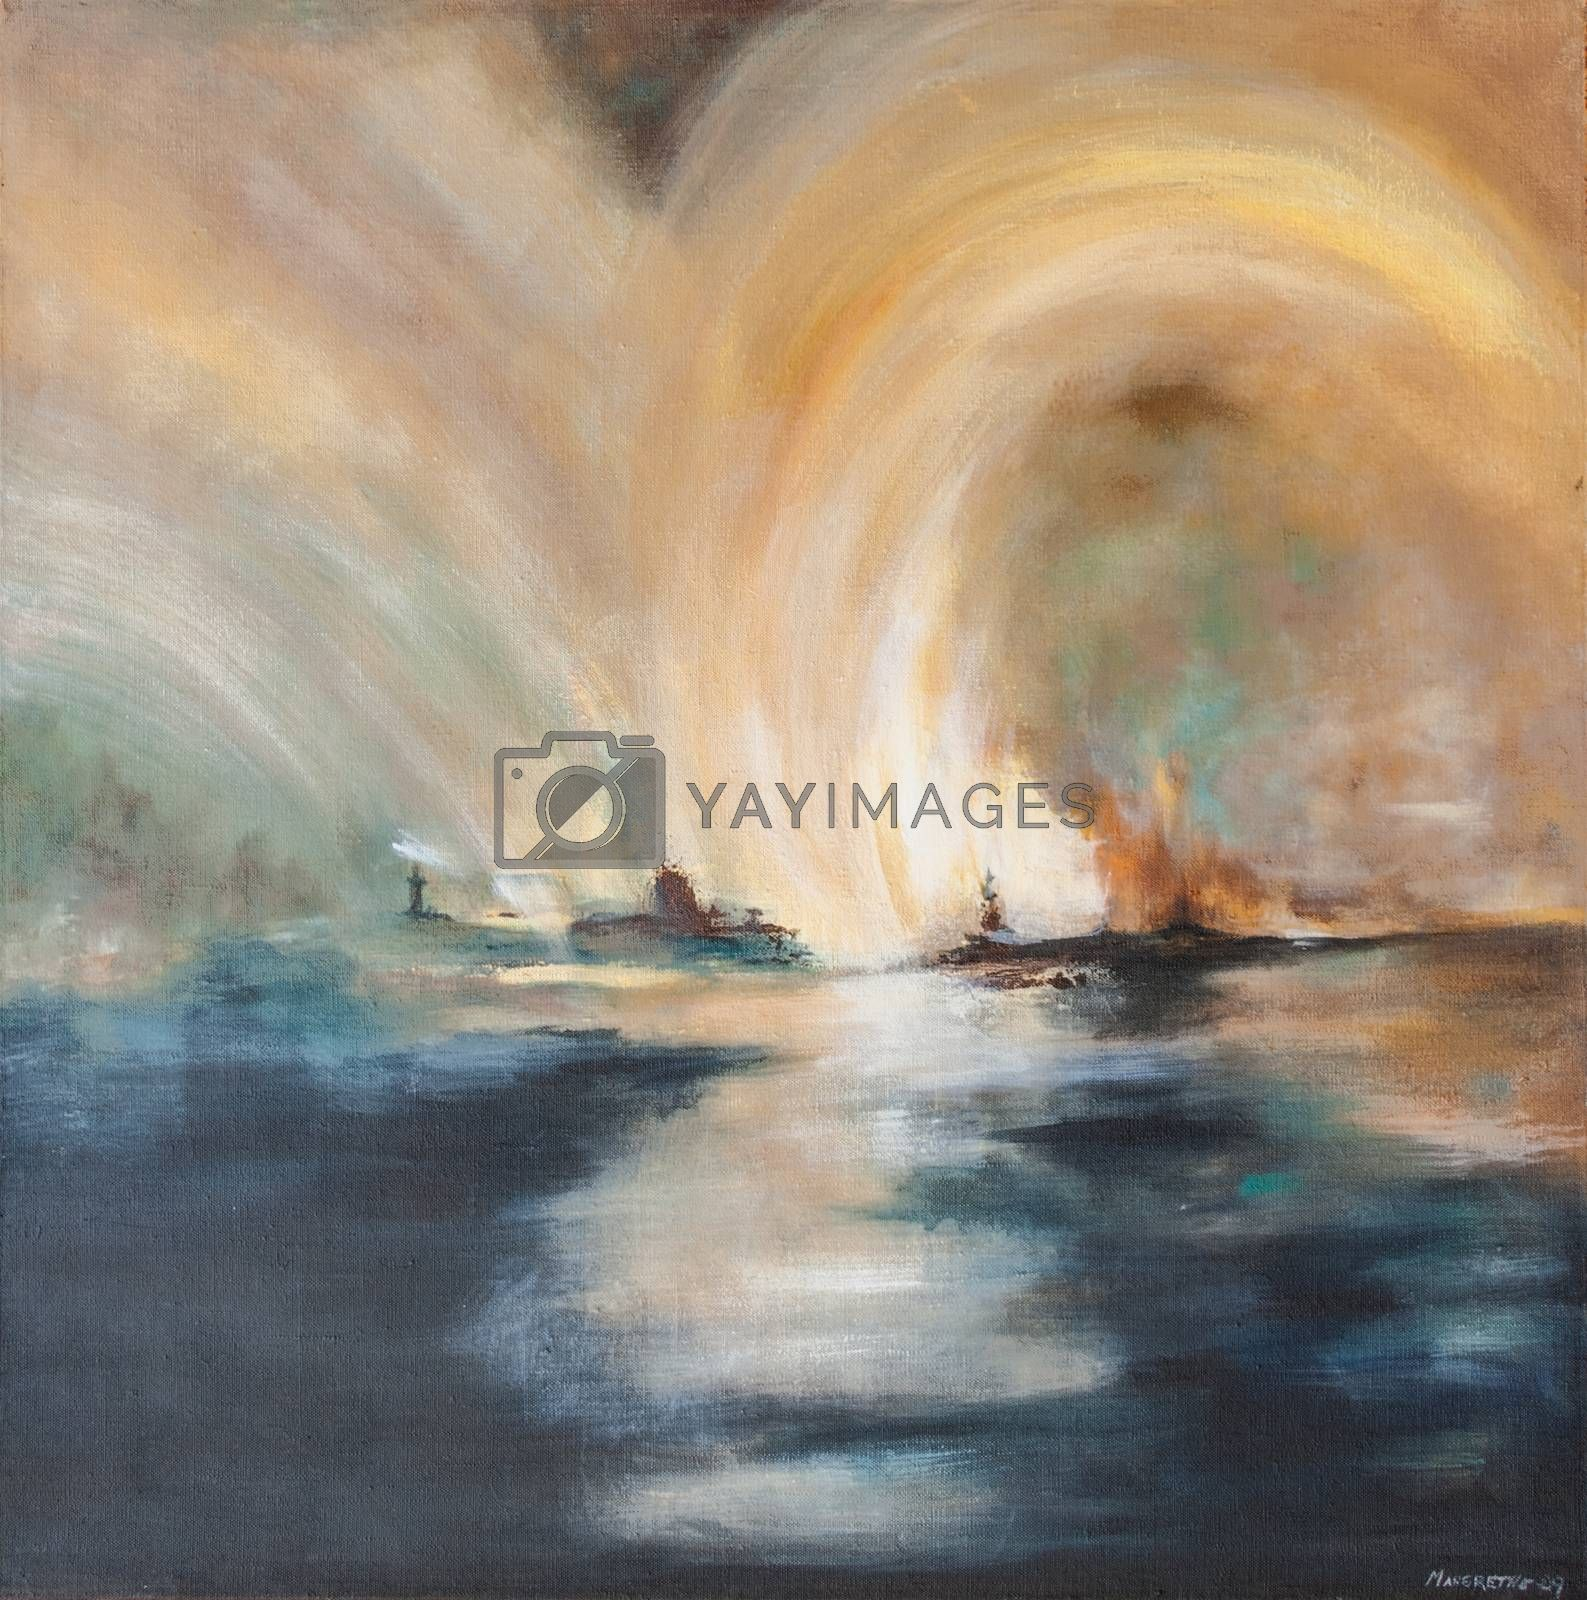 Light over the sea in northern Norway, spectacular view in the north of Norway. Oil painting on canvas. Both figurative and non-figurative.